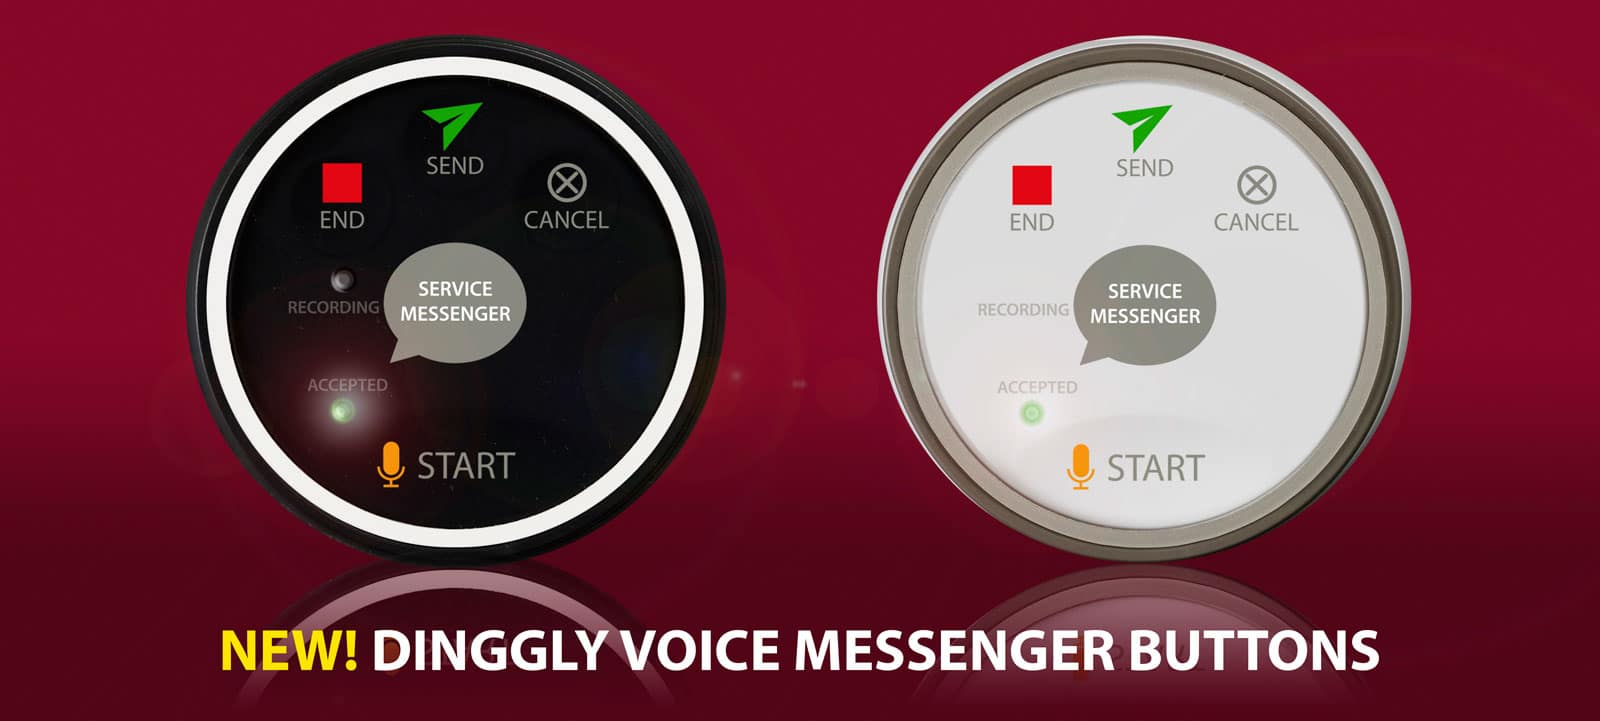 Dinggly Voice Messenger Buttons